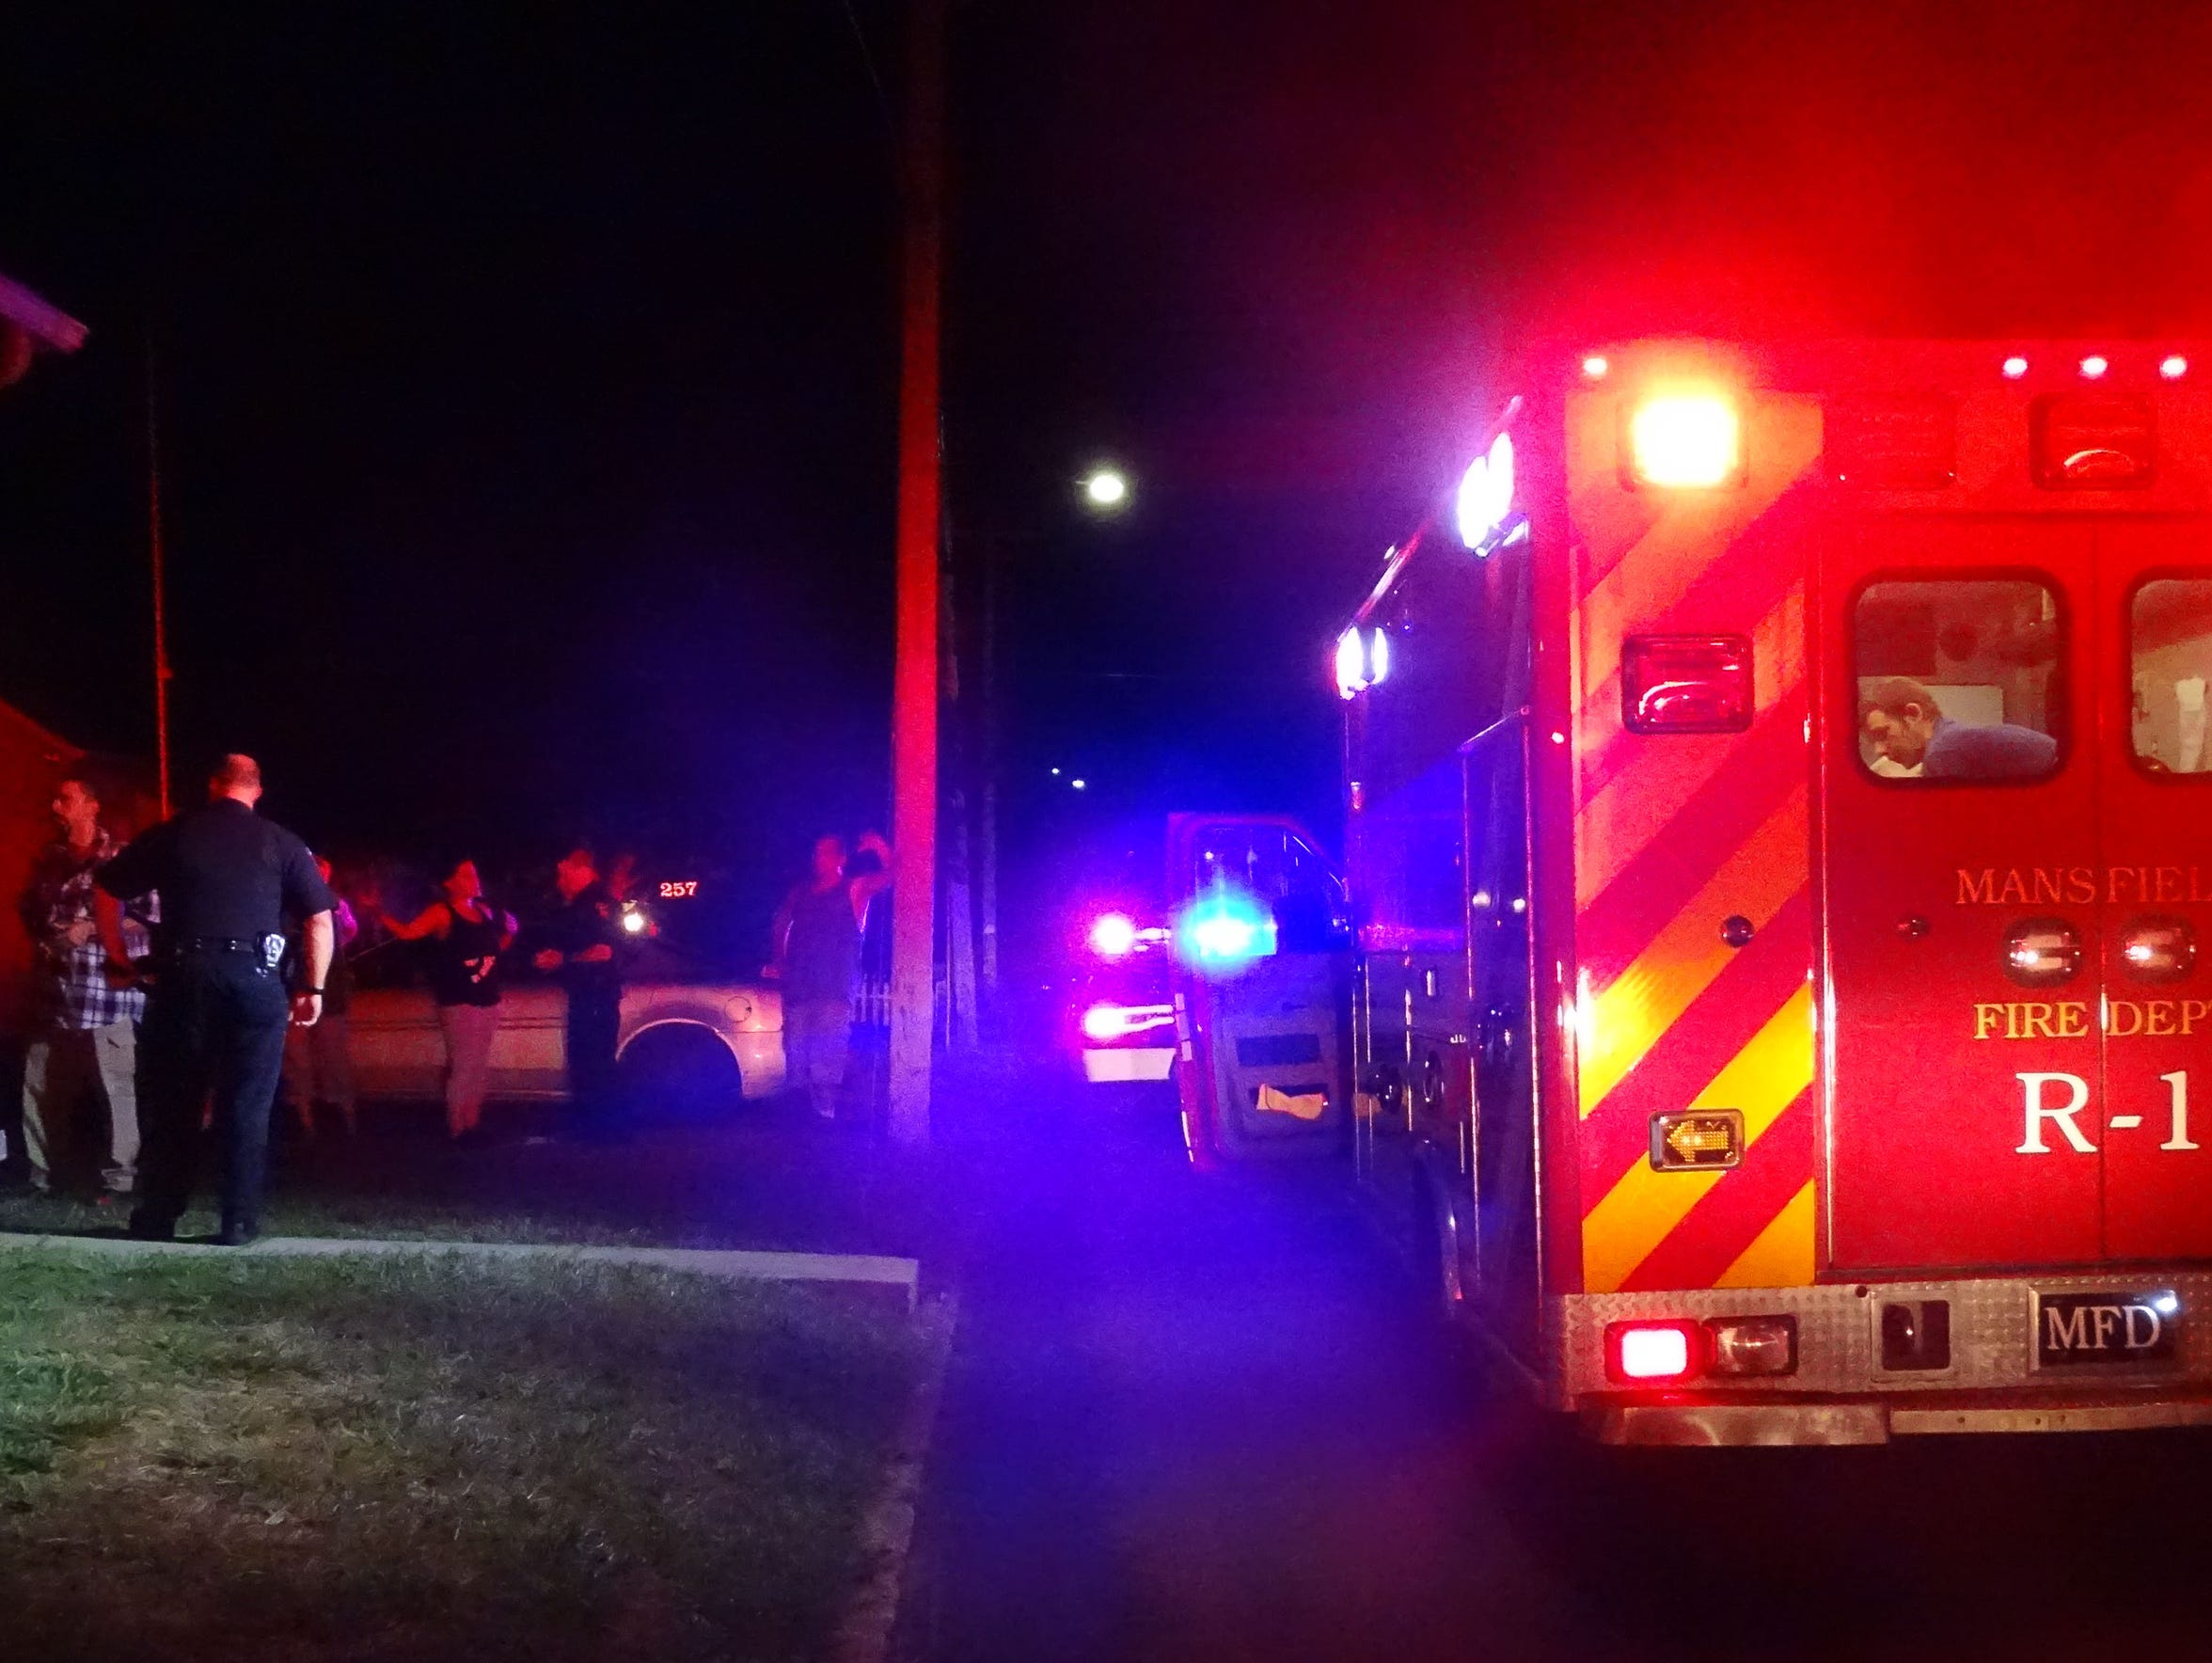 Mansfield police interview witnesses while fire personnel